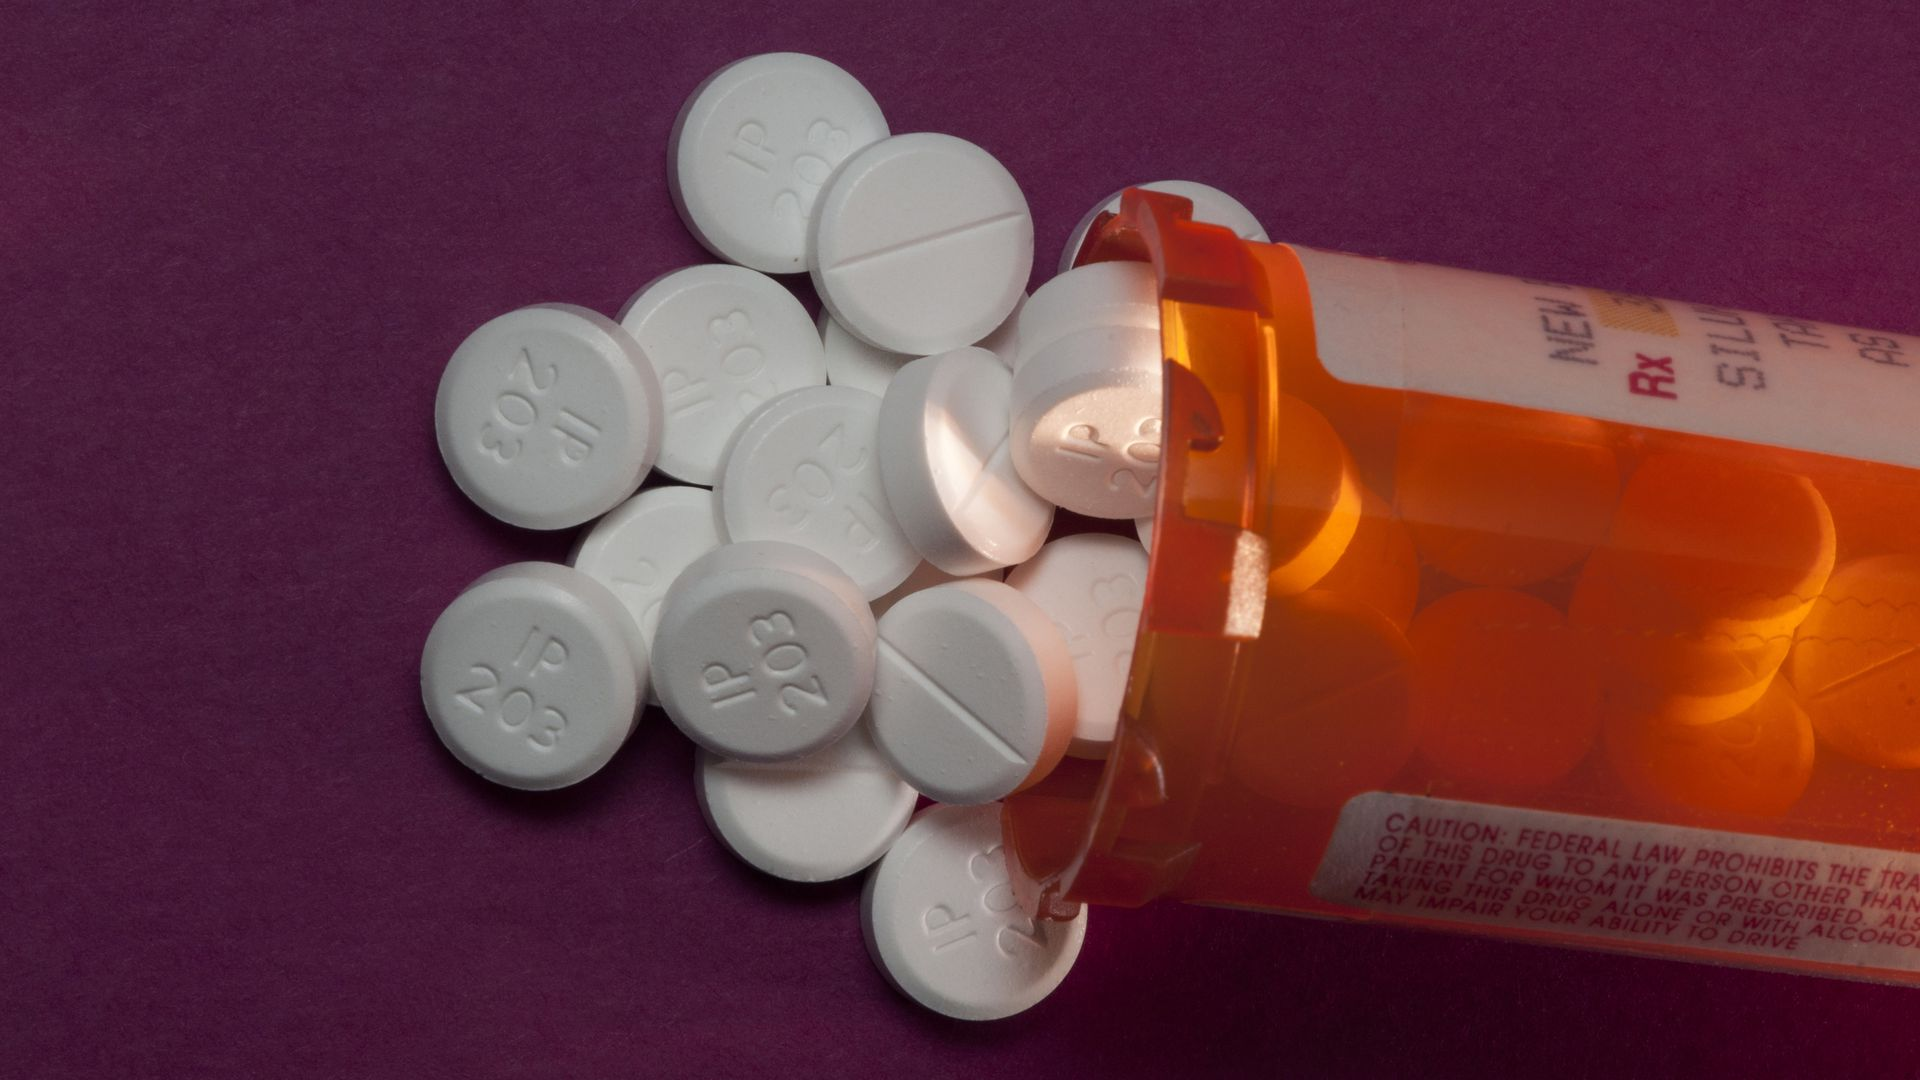 In this image, small round white oxycodone pills spill out of a prescription bottle